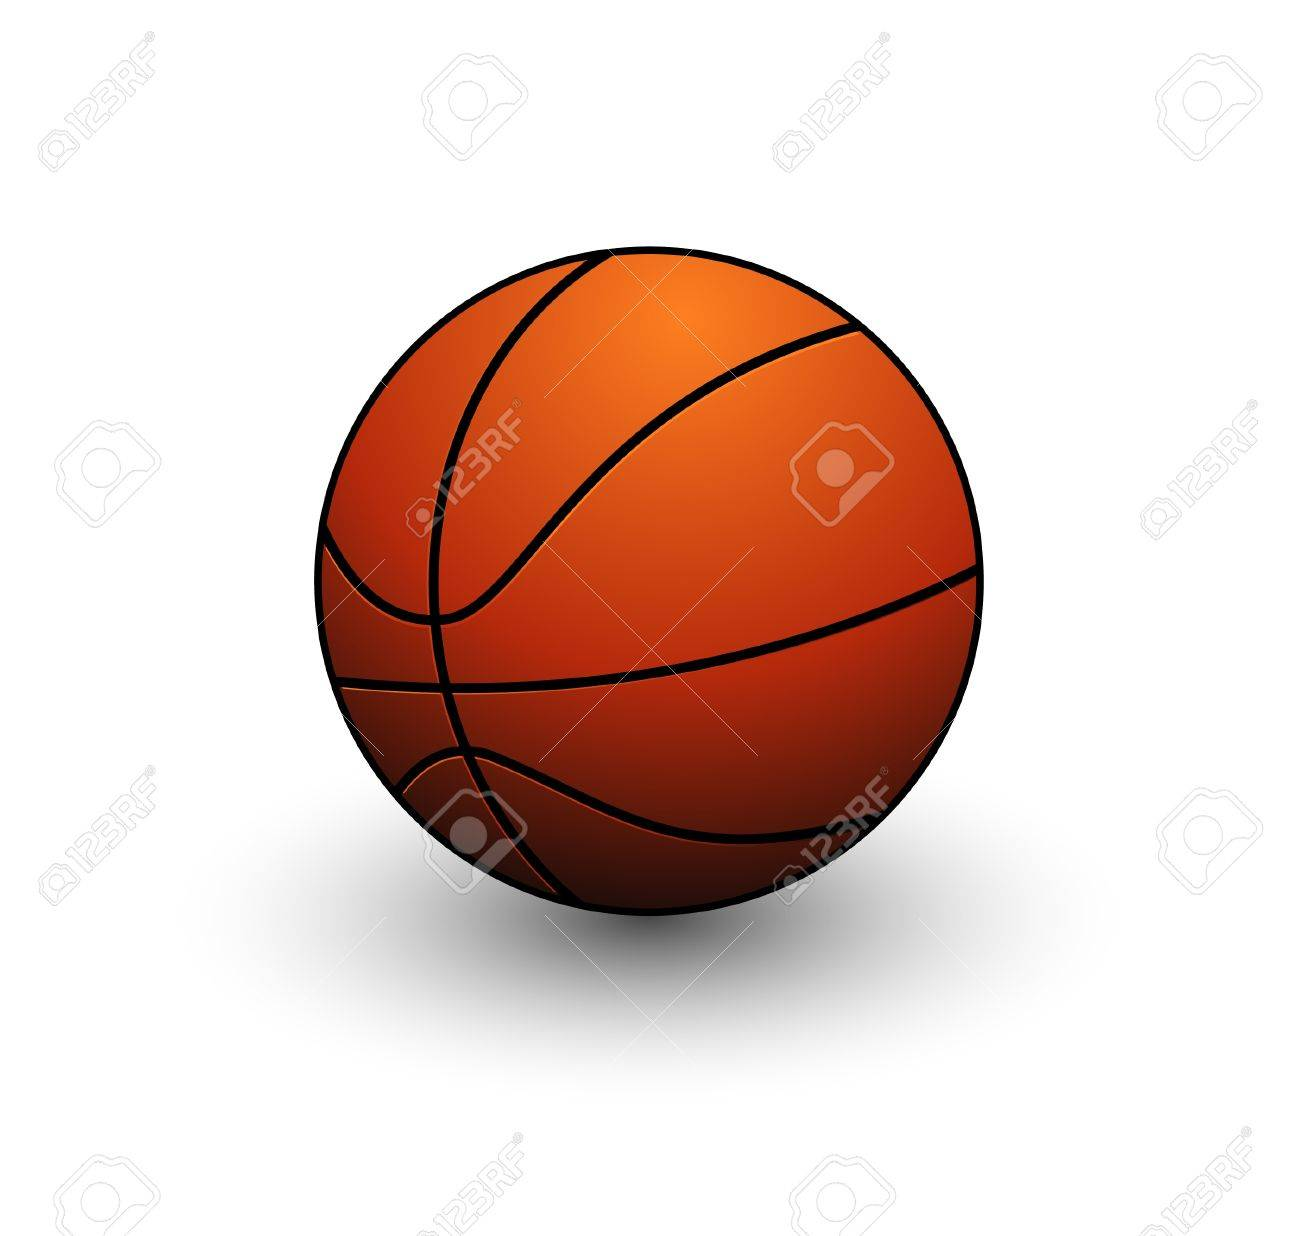 abstract basketball ball symbol orange color isolated royalty free